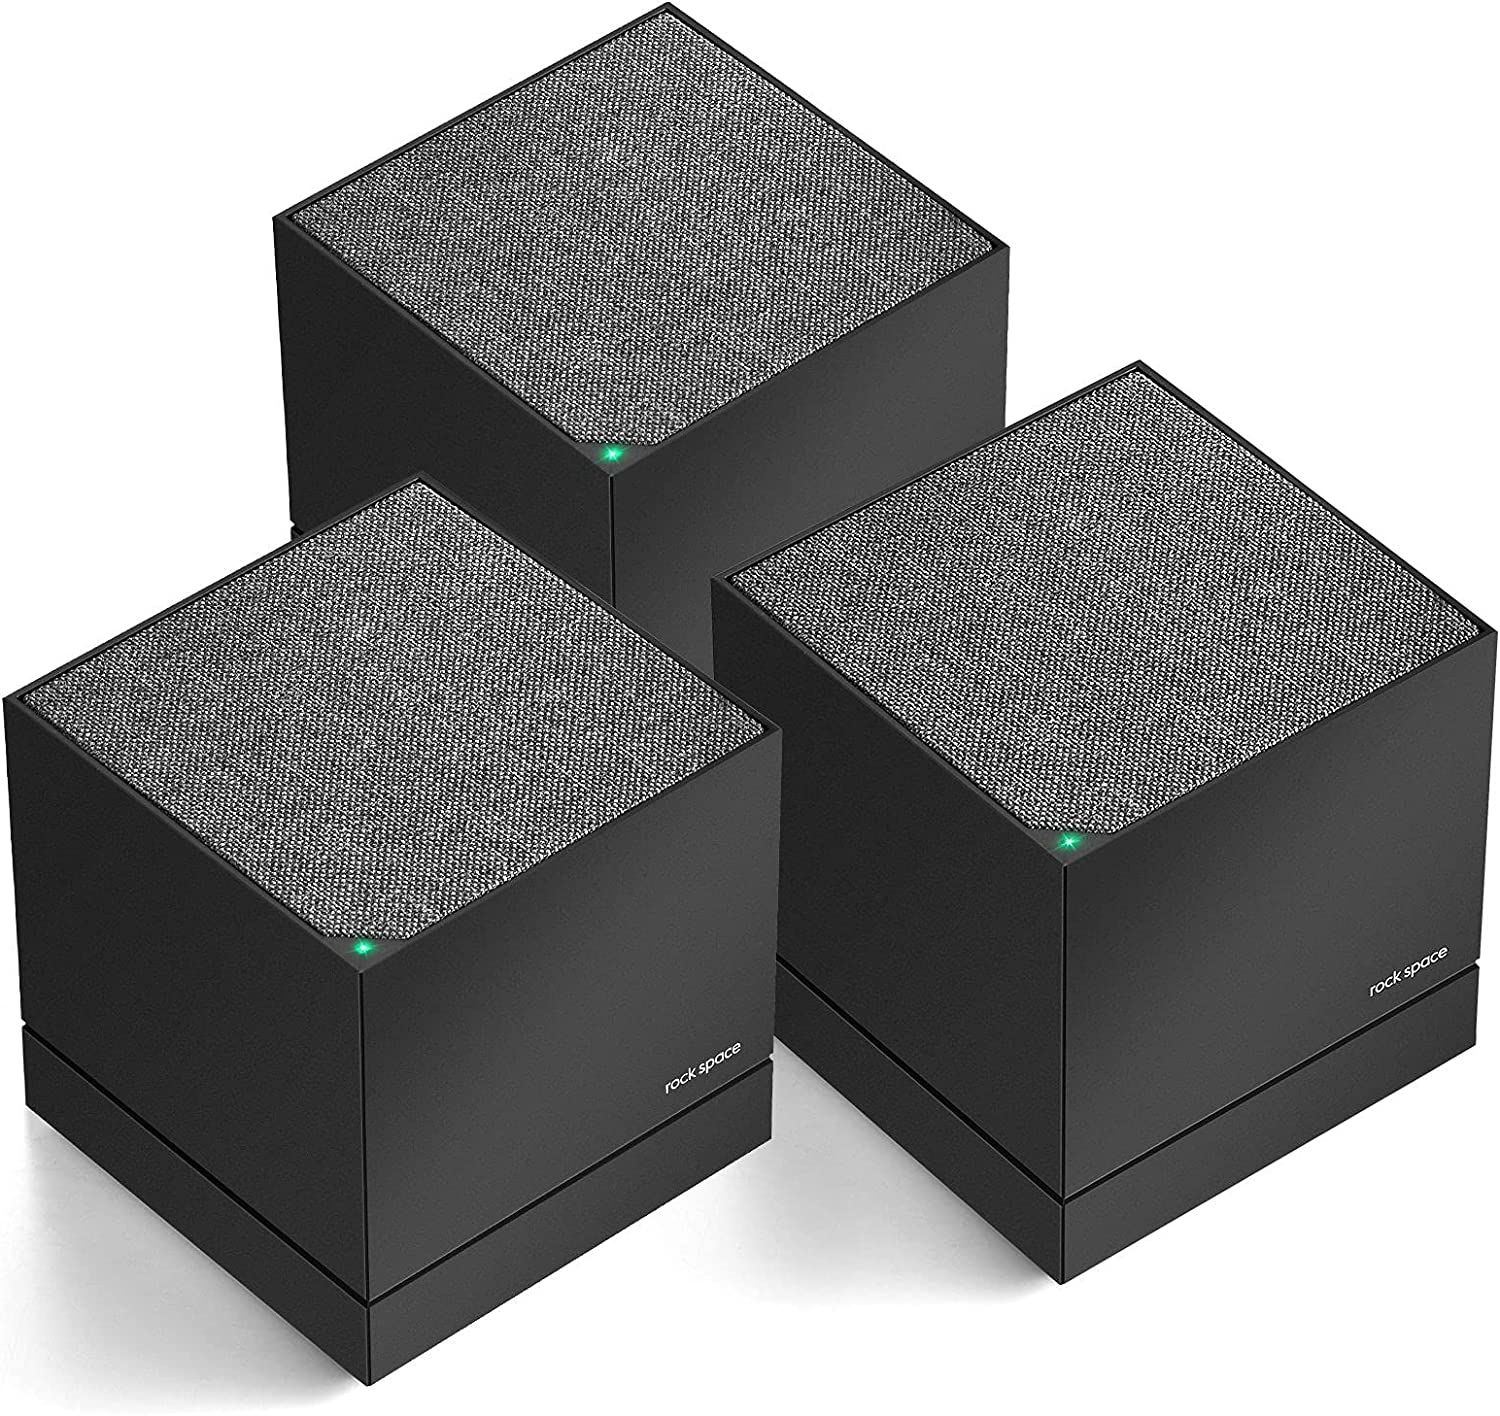 Tri-Band Whole Home Mesh WiFi System, rockspace Router & Extender Replacement Covers Up to 6000sq.ft. Seamless High Performance Mesh WiFi Network Covers 8+ Rooms and100+ Devices-3 Pack